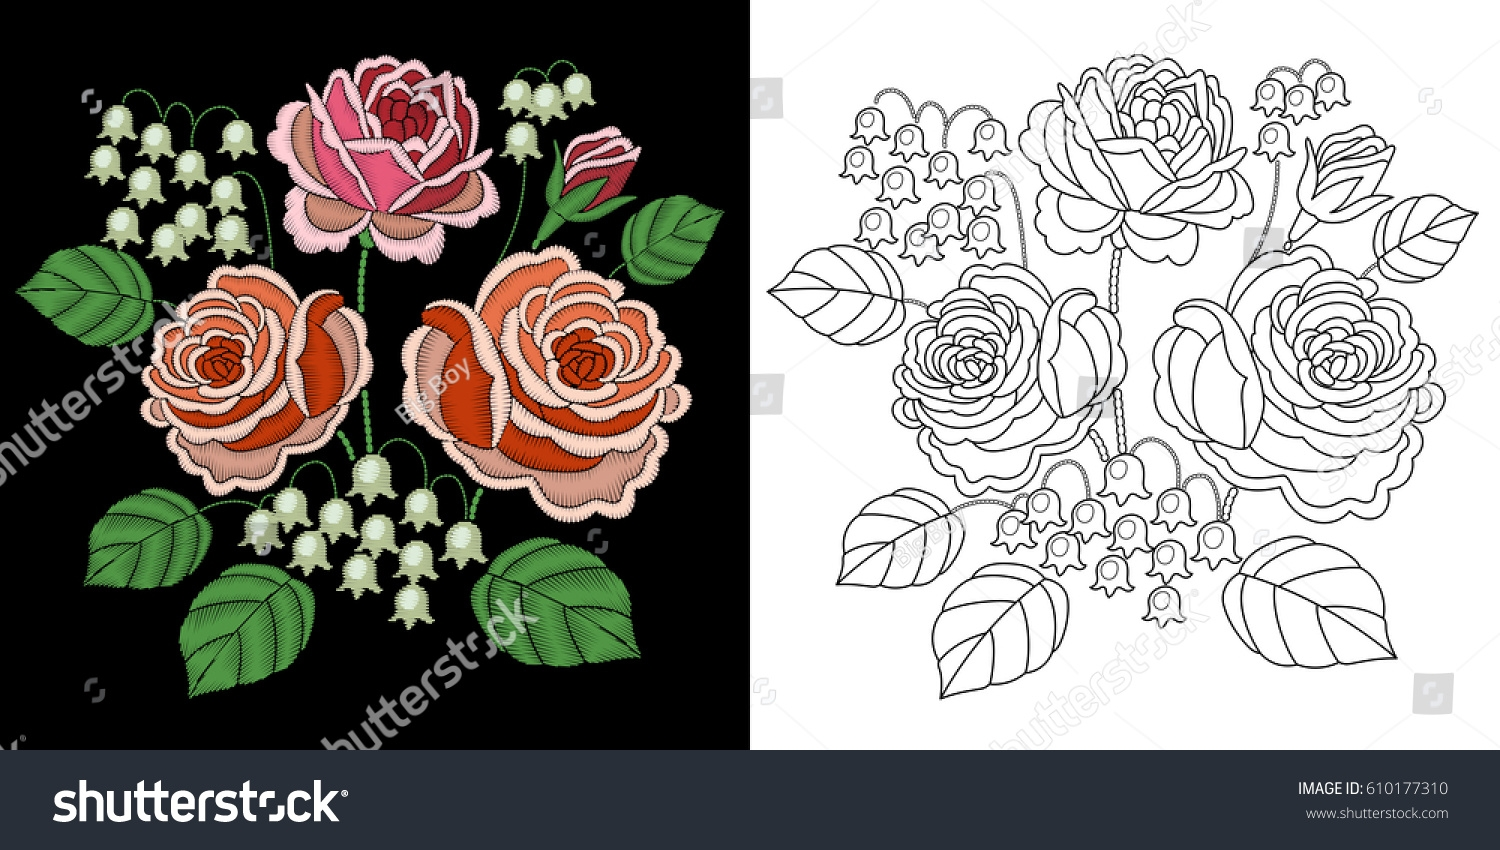 rose flower coloring pages -